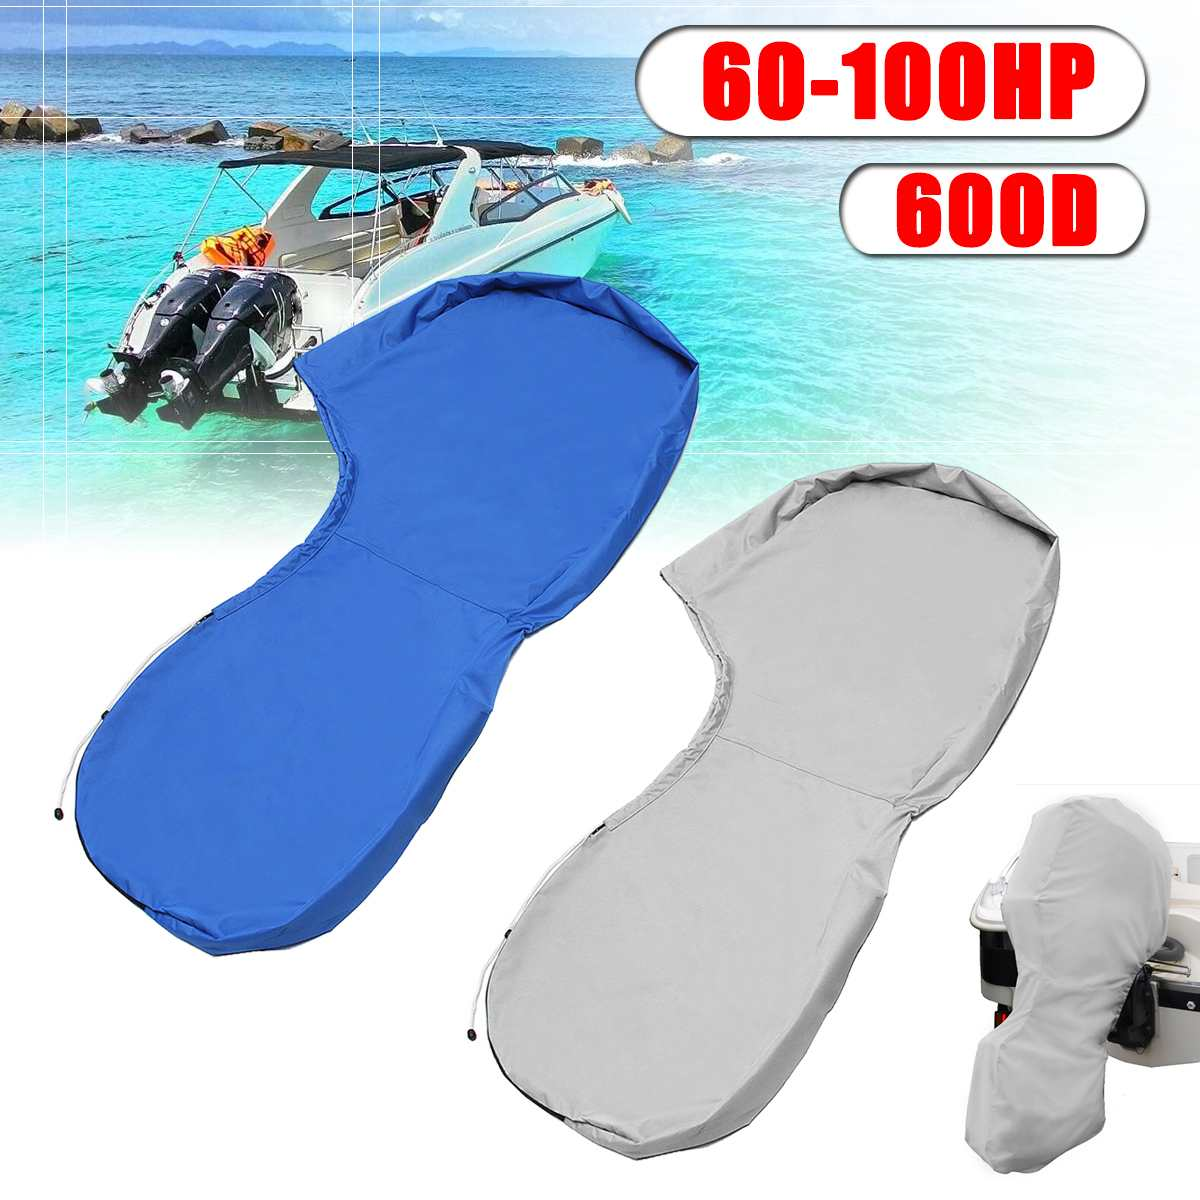 600D 66.93 Inch For 100-150HP Hose Power Boat Full Outboard Engine Motor Cover Waterproof